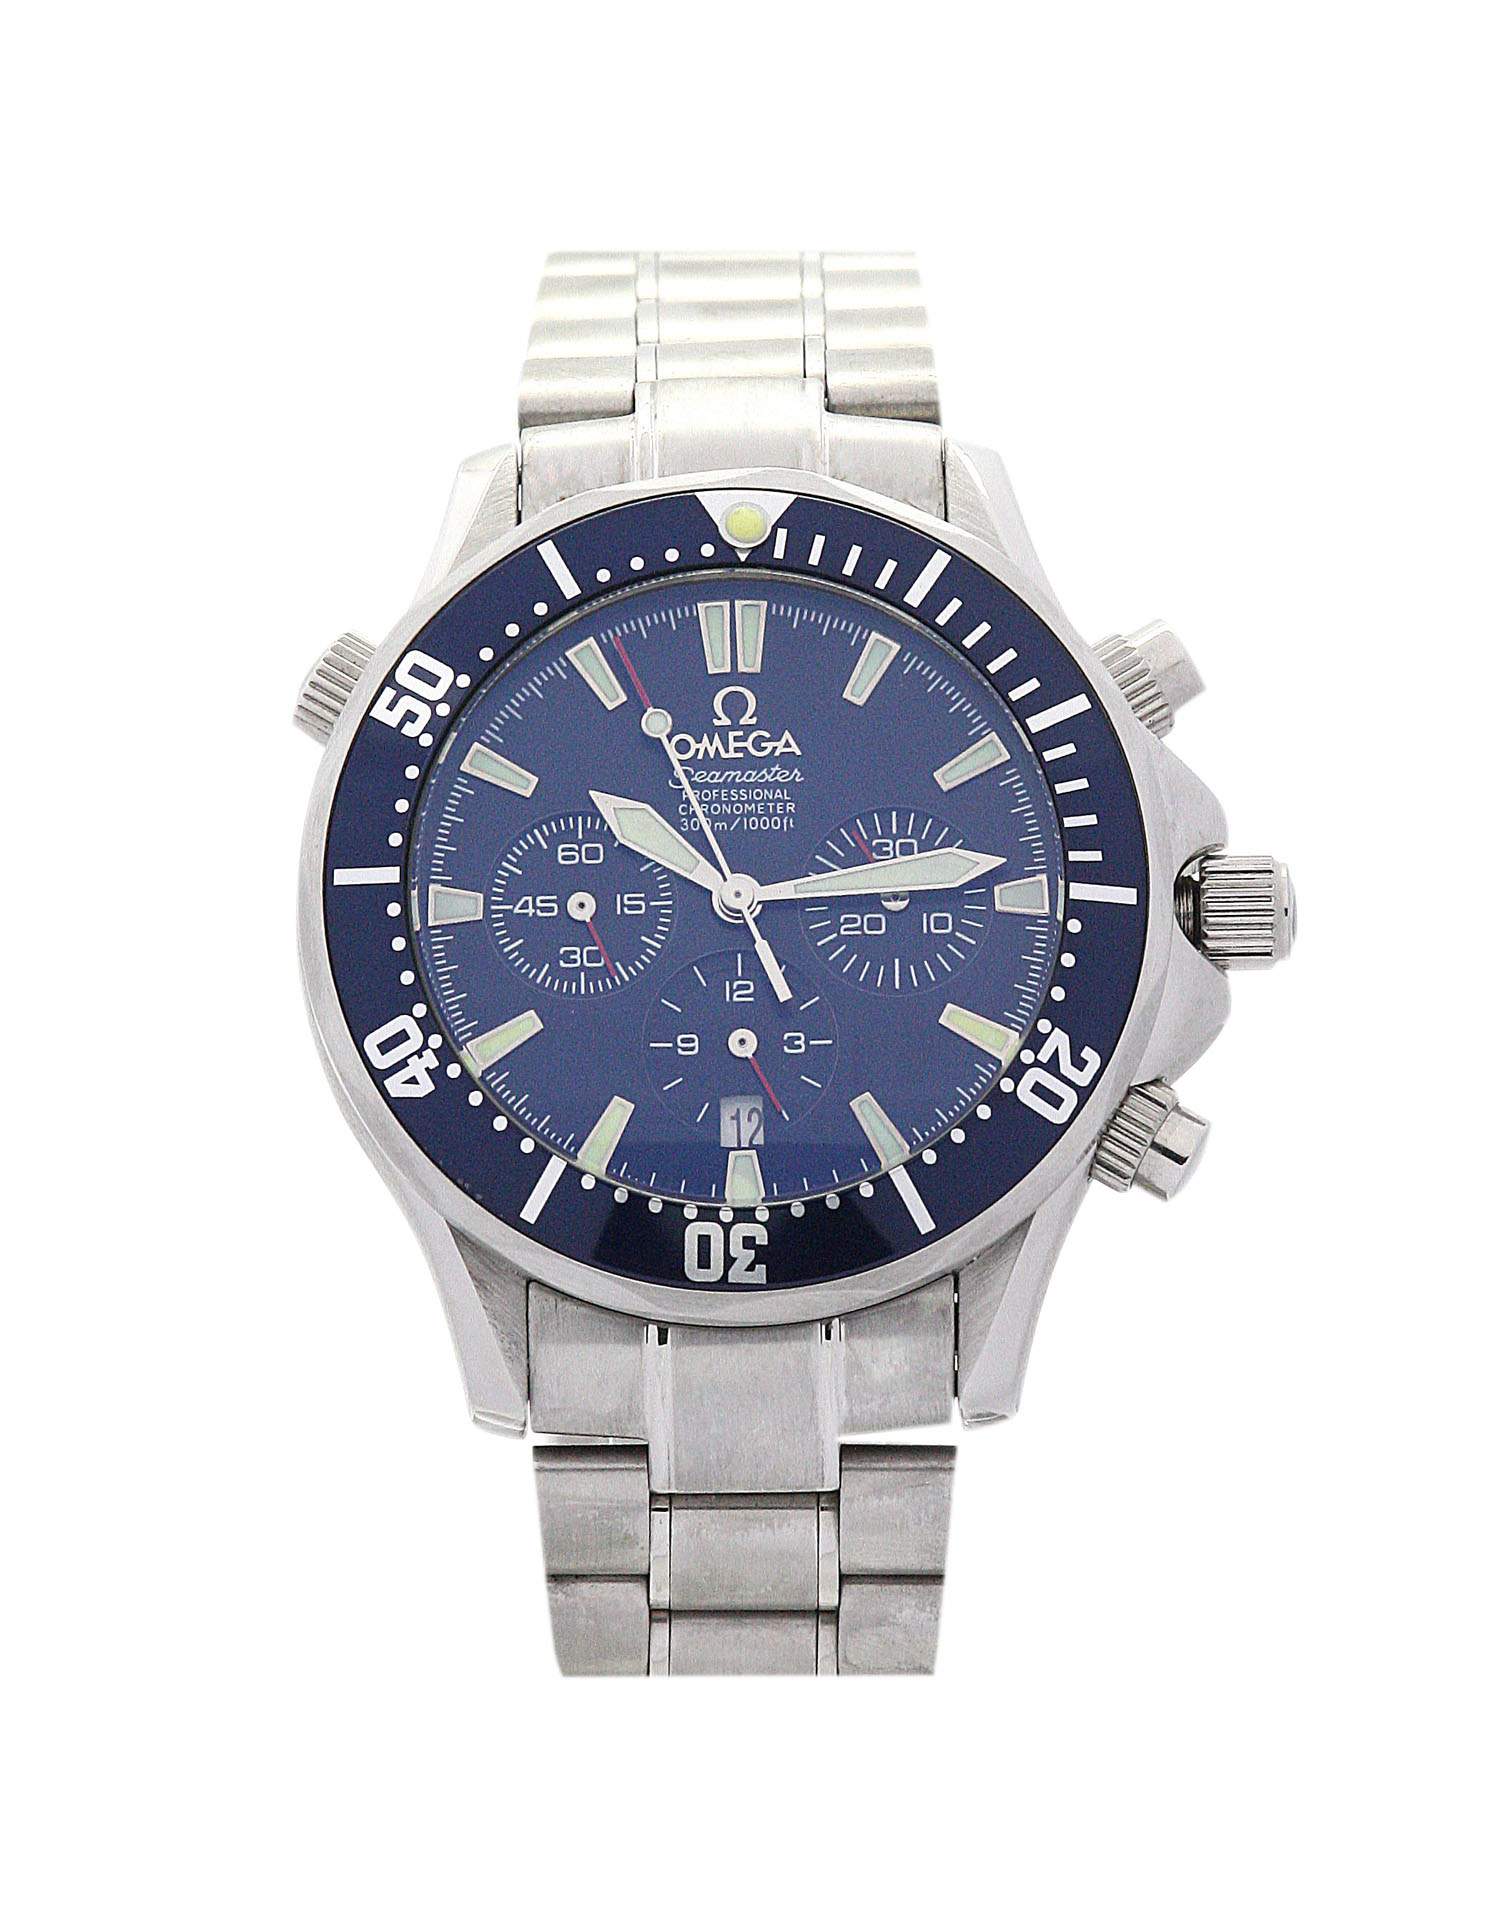 Omega Speedmaster Date 3811.80.03 Mens 38 Mm Blue And Steel Case Automatic Movement – iapac.to